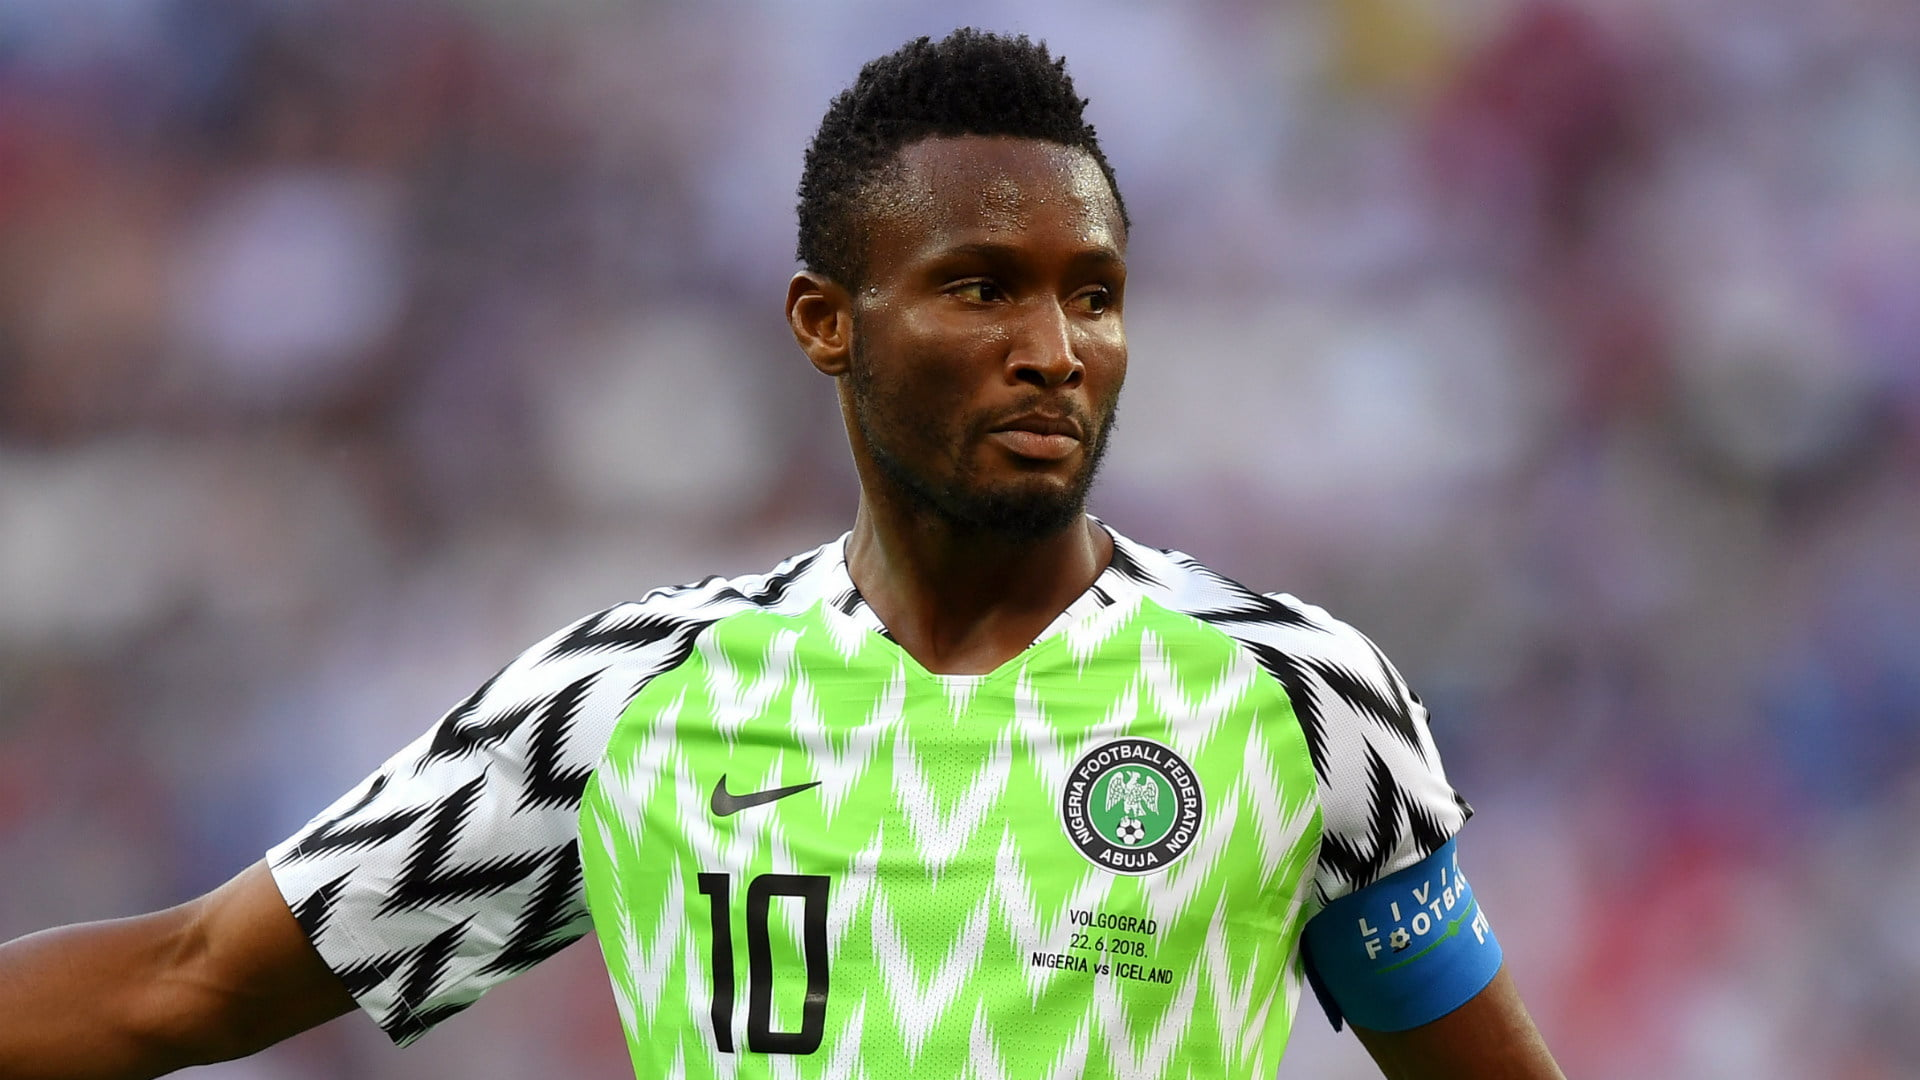 john obi mikel nigeria 2018 world cup cg3t118ndqyc1qxhh30pmrki7 - Nigeria vs South Africa: What Mikel Obi told NFF president, Pinnick